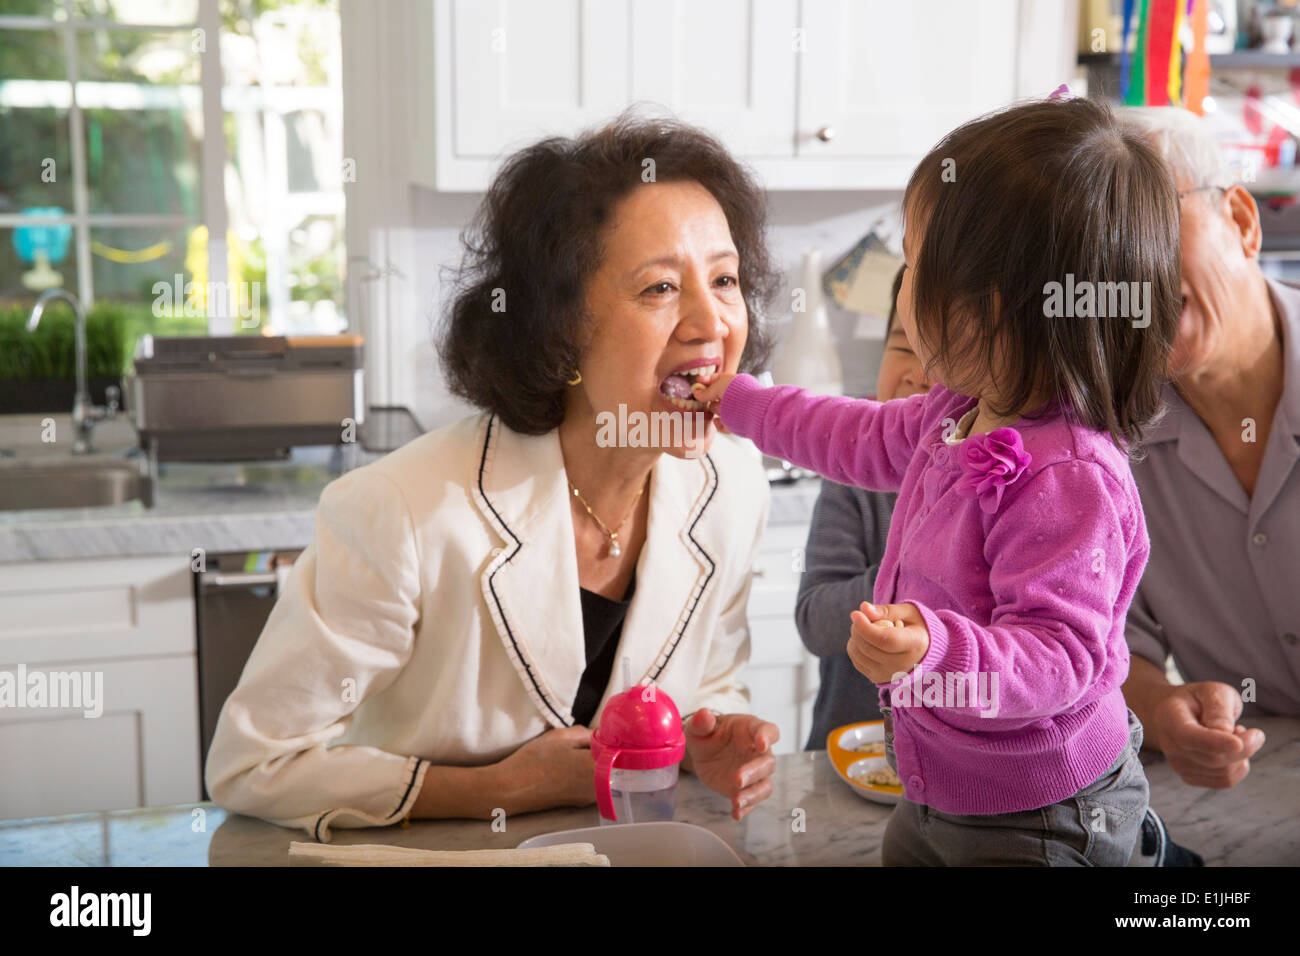 Female toddler feeding snack to grandmother in kitchen - Stock Image